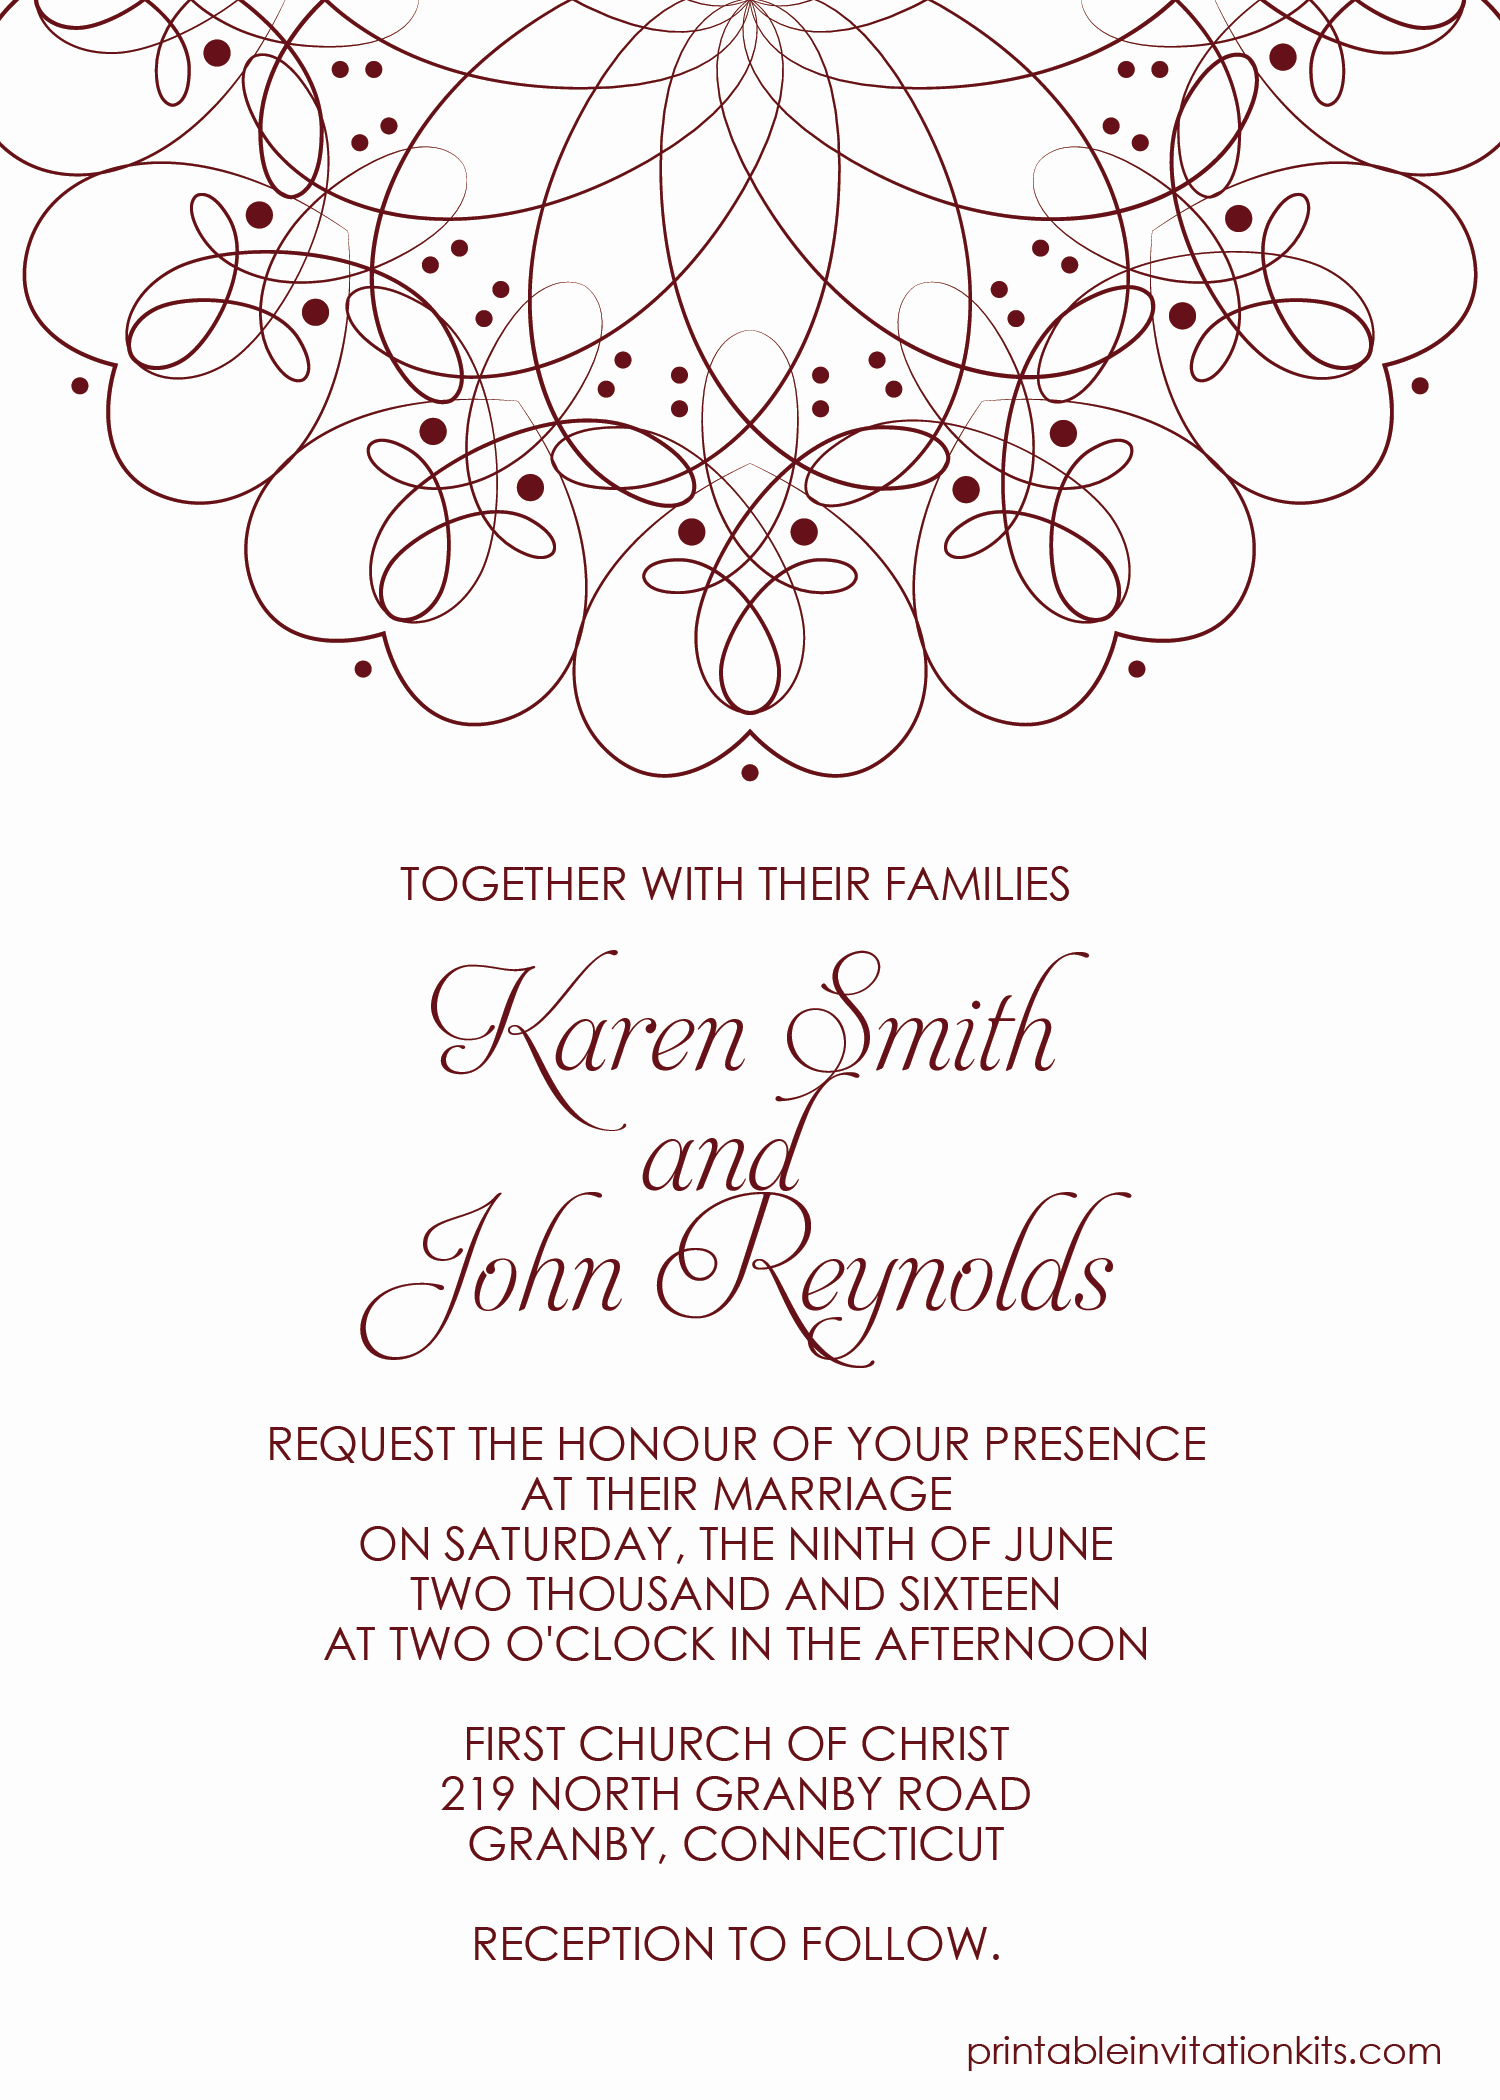 Printable Wedding Invitation Template Beautiful Spiral Border Invitation Free Pdf Template for Weddings